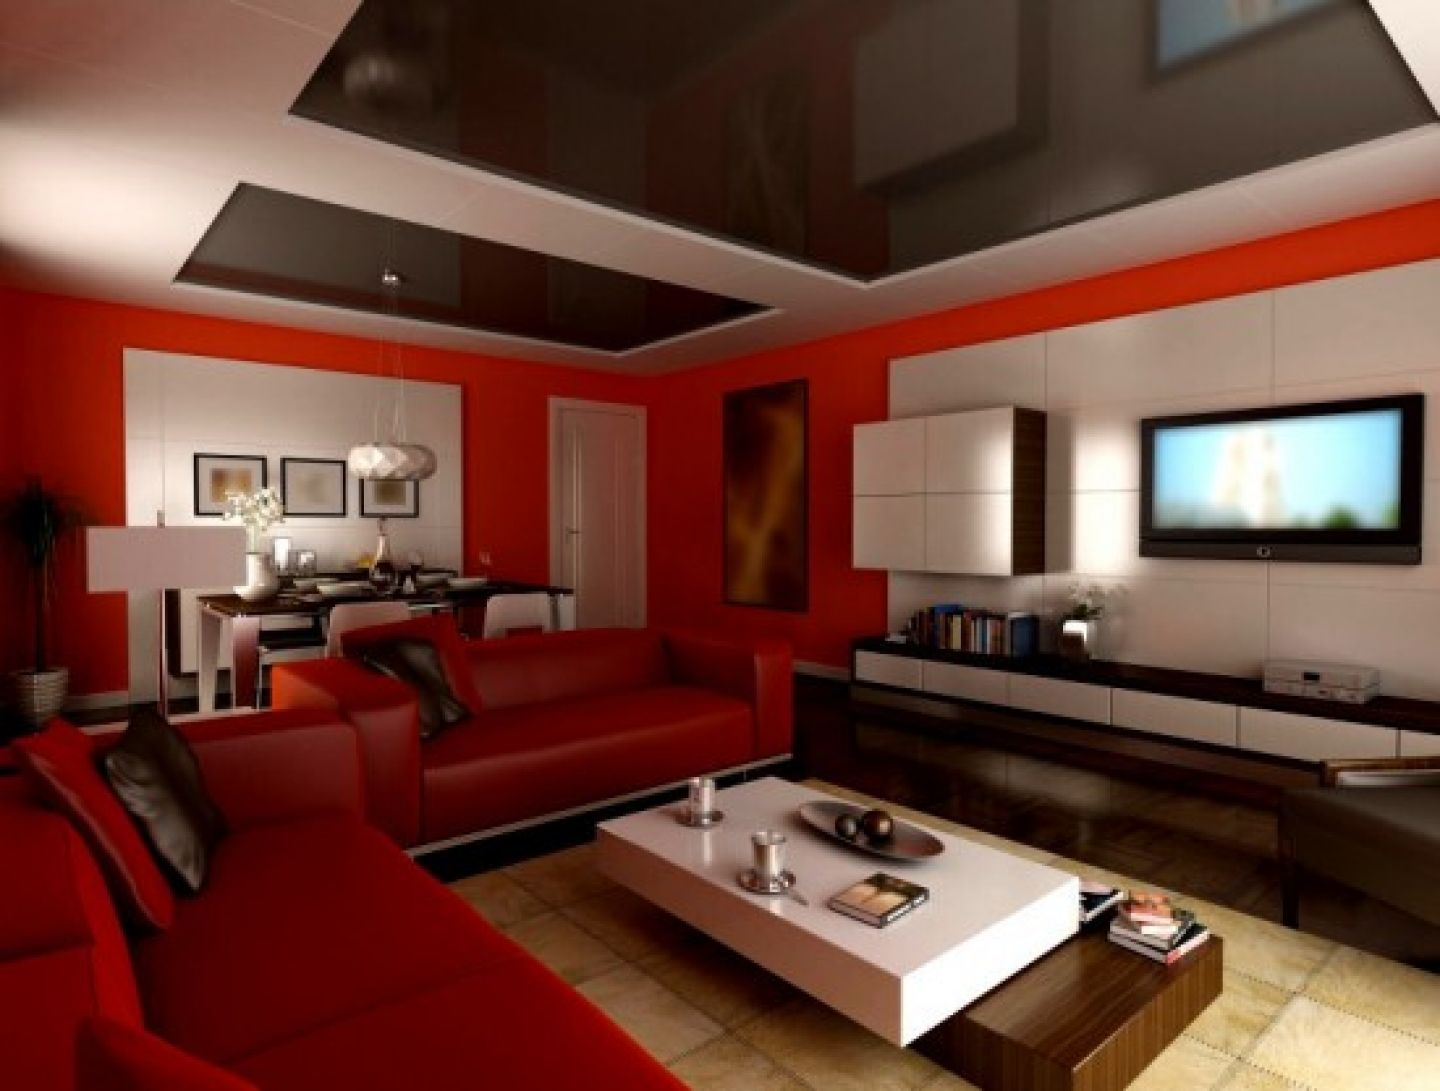 Paint colors for bedrooms red - Design Living Room Paint Colors Ideas Modern Red White Living Room With Red Sectional Sofa And